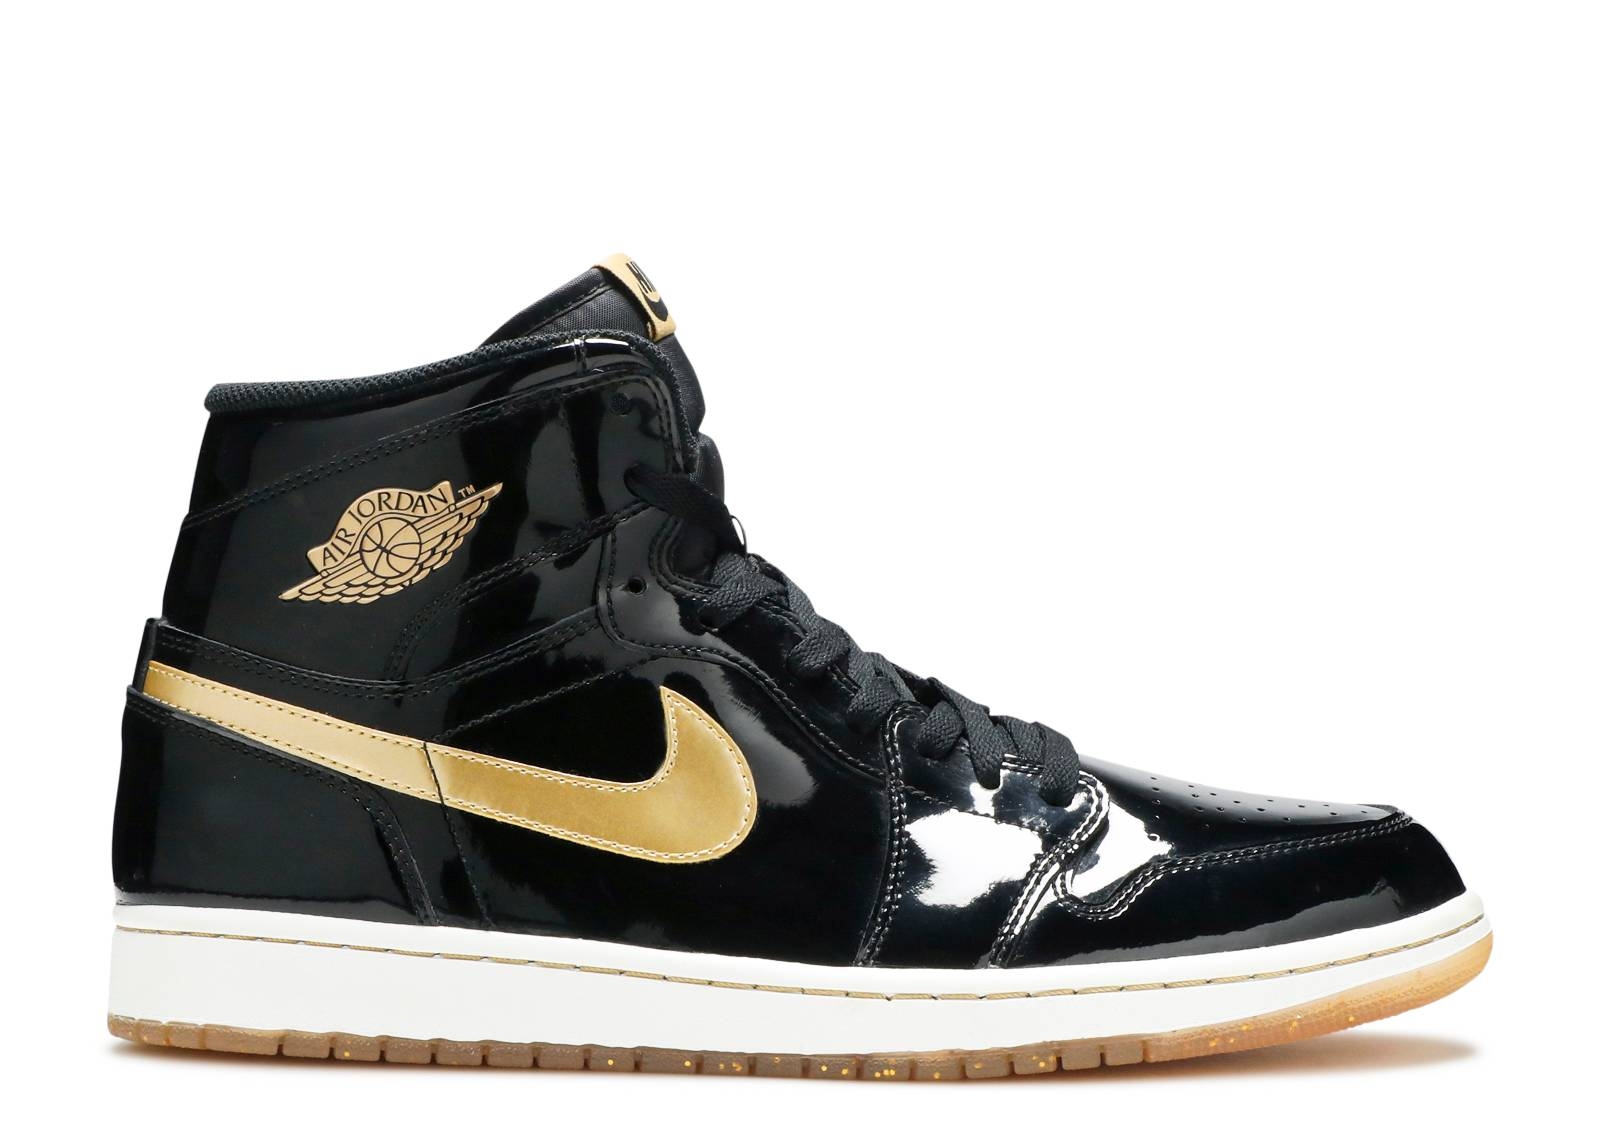 Air Jordan 1 High Og BlackMetallic Gold For Sale